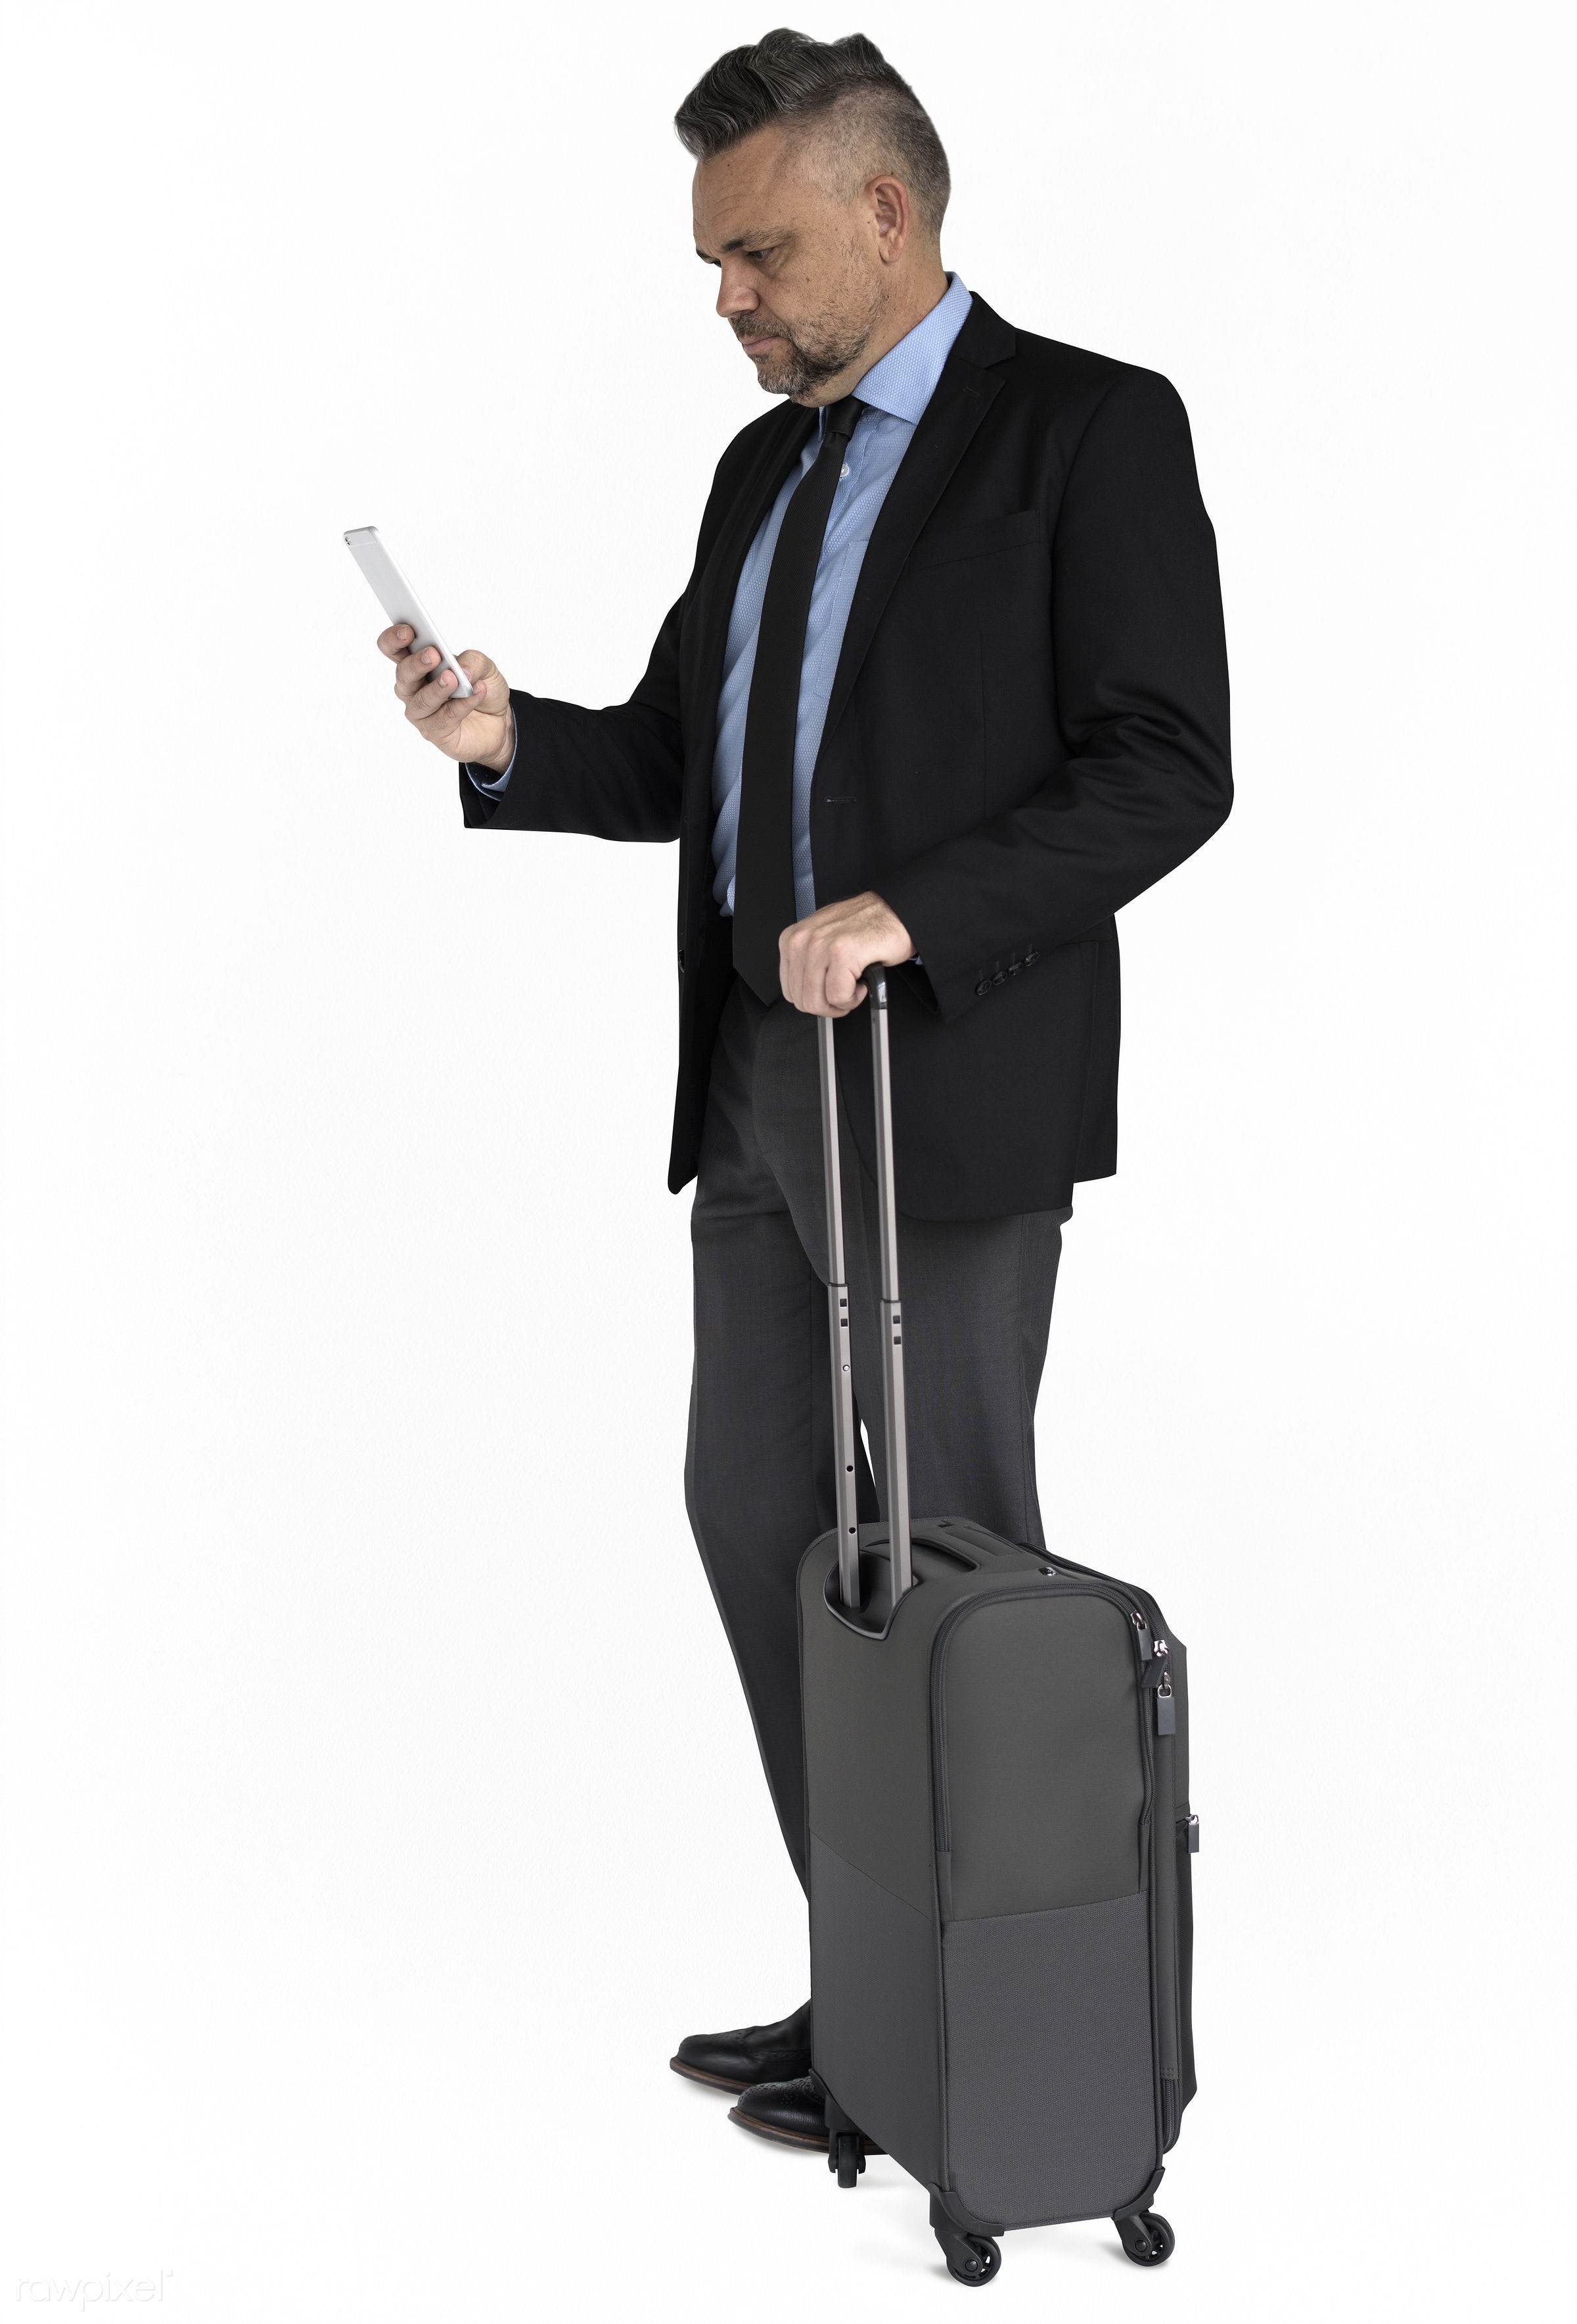 business trip, expression, studio, person, phone, business wear, isolated on white, luggage, travel, people, business,...